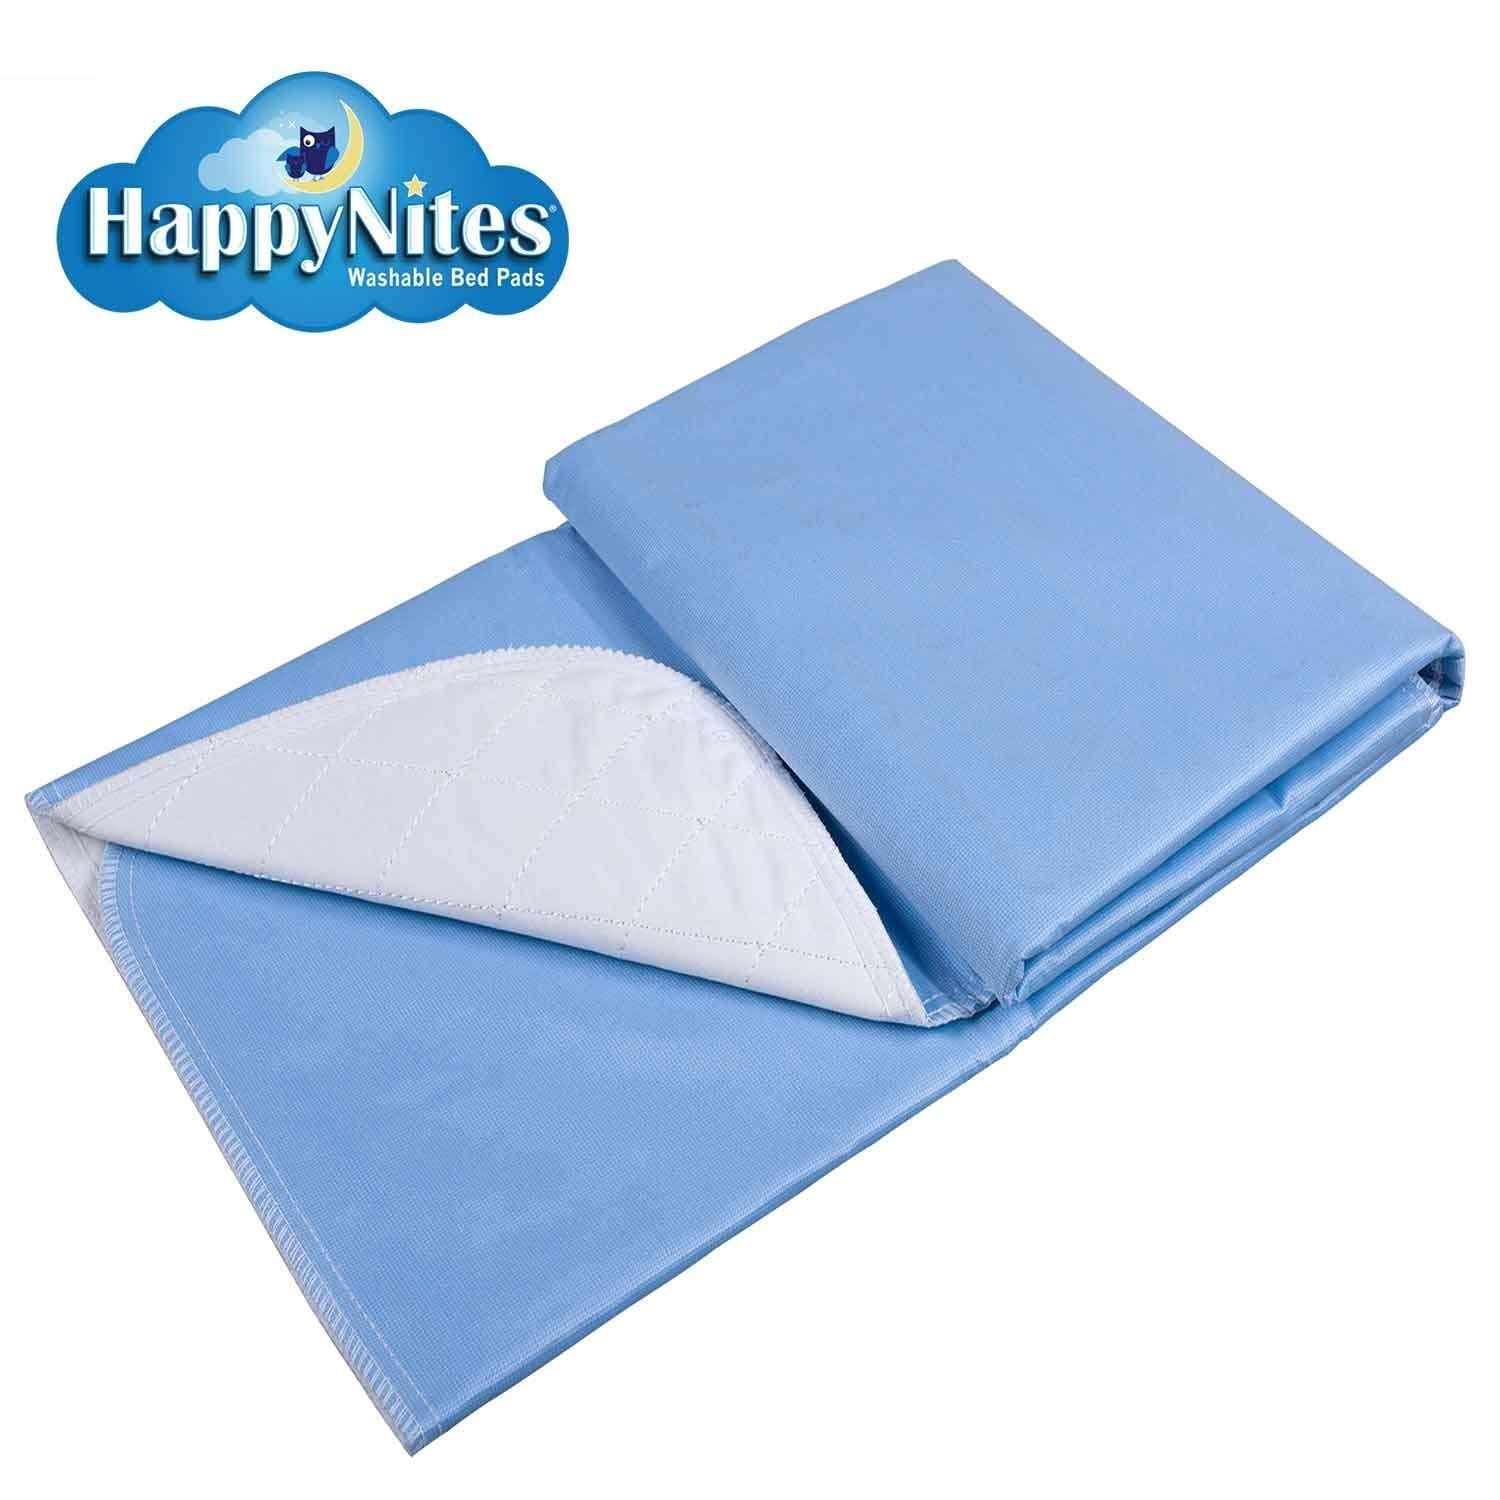 HappyNites Bed Mat Bedwetting Underpads - Washable 36x52, Hospital 1500ml Soft Reusable Waterproof Bed Mats for Incontinence Kids Elderly Adults (36x52-2pack)